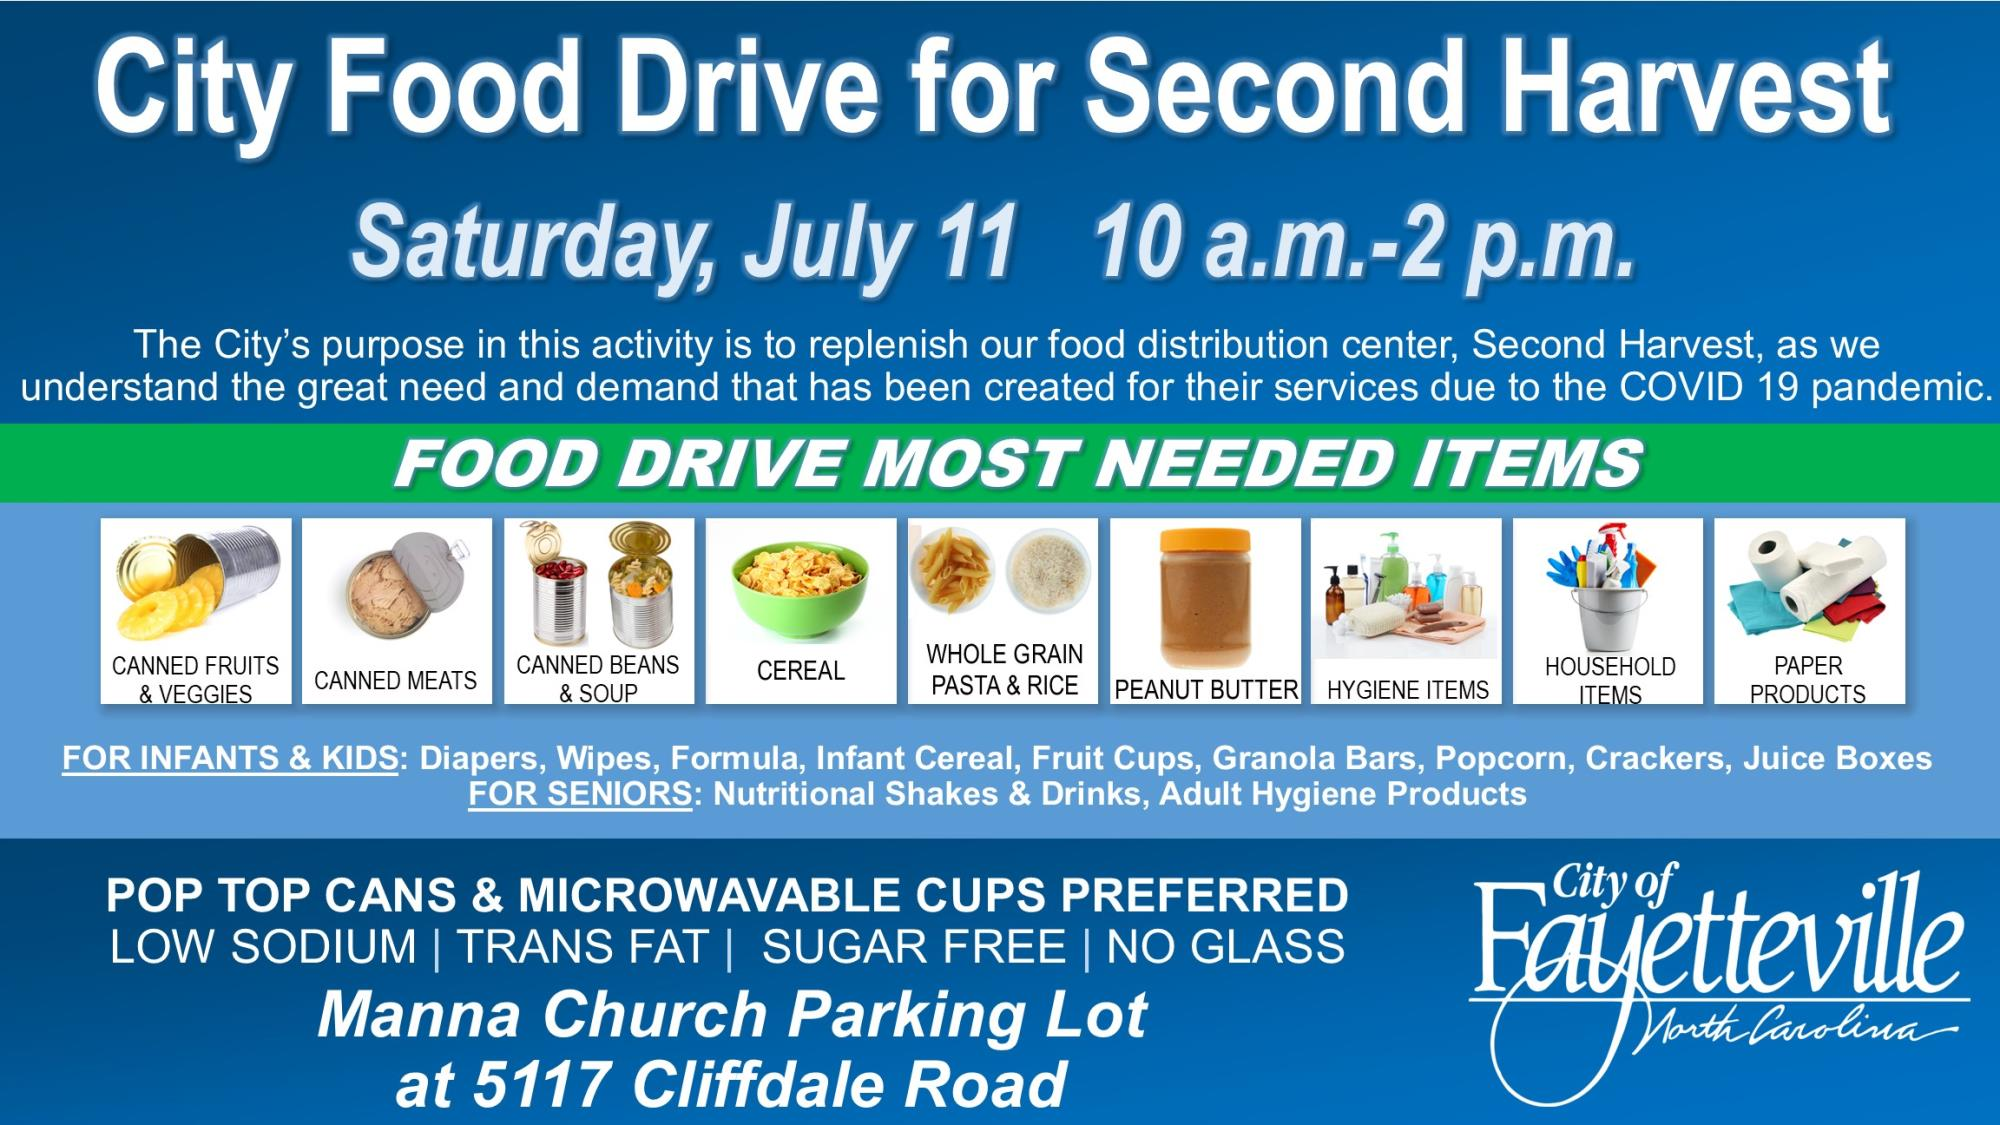 City COVID-19 Relief Food Drive